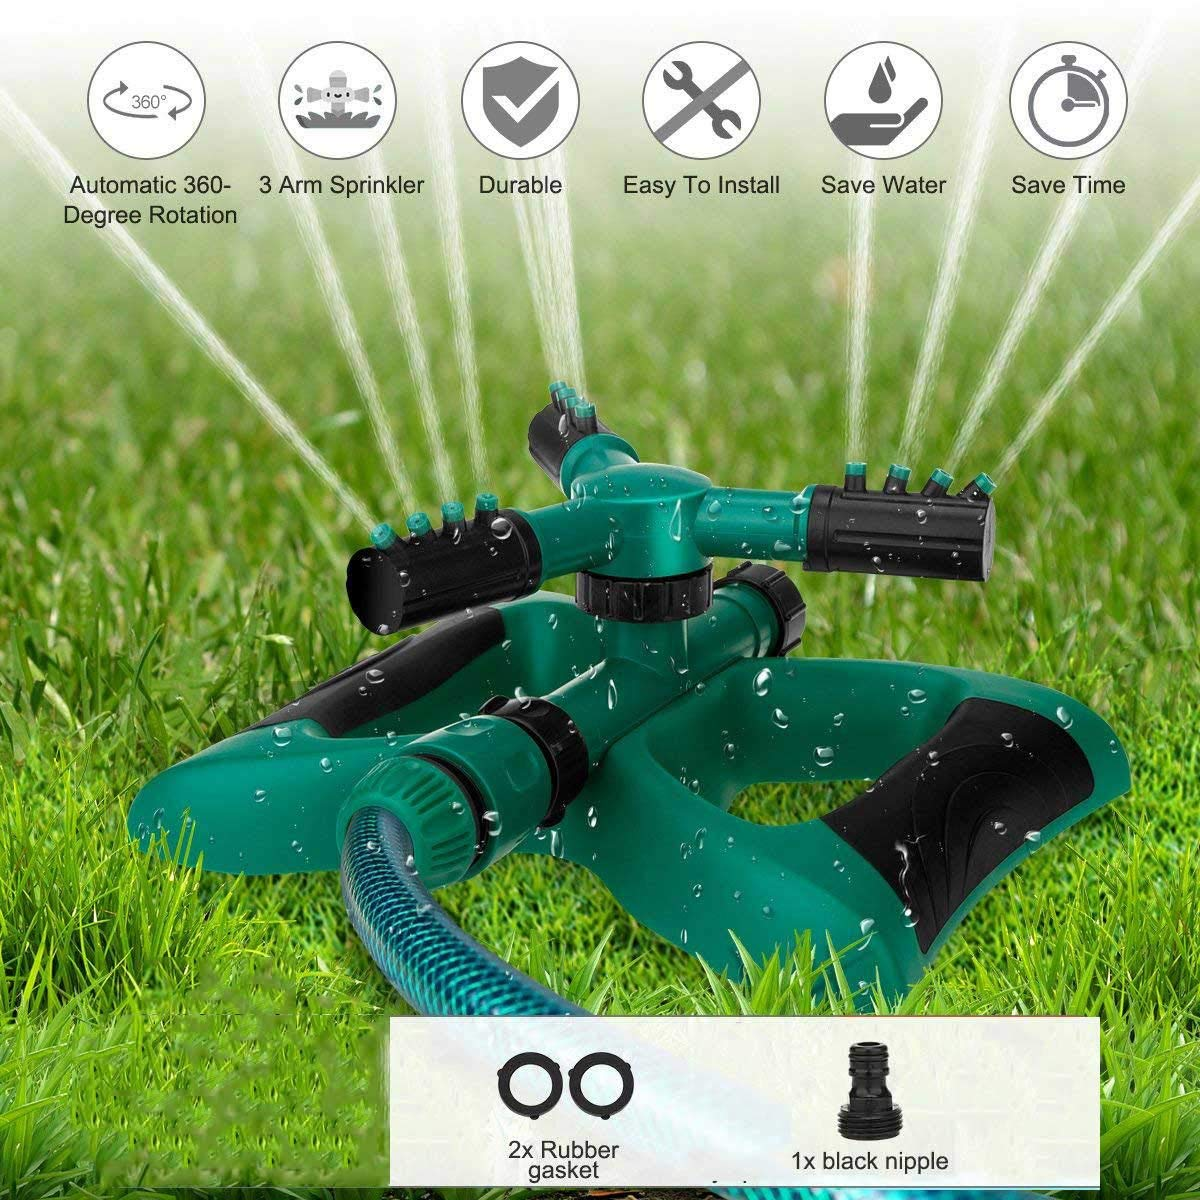 Durable Lawn Sprinkler, Water Sprinklers for Lawn, Garden, Yard, Flower, Grass, Plant, Park, 360 Degree Rotating Sprinkler Irrigation System, Adjustable Spray Angle and Distance - Up to 3600 sq.ft.